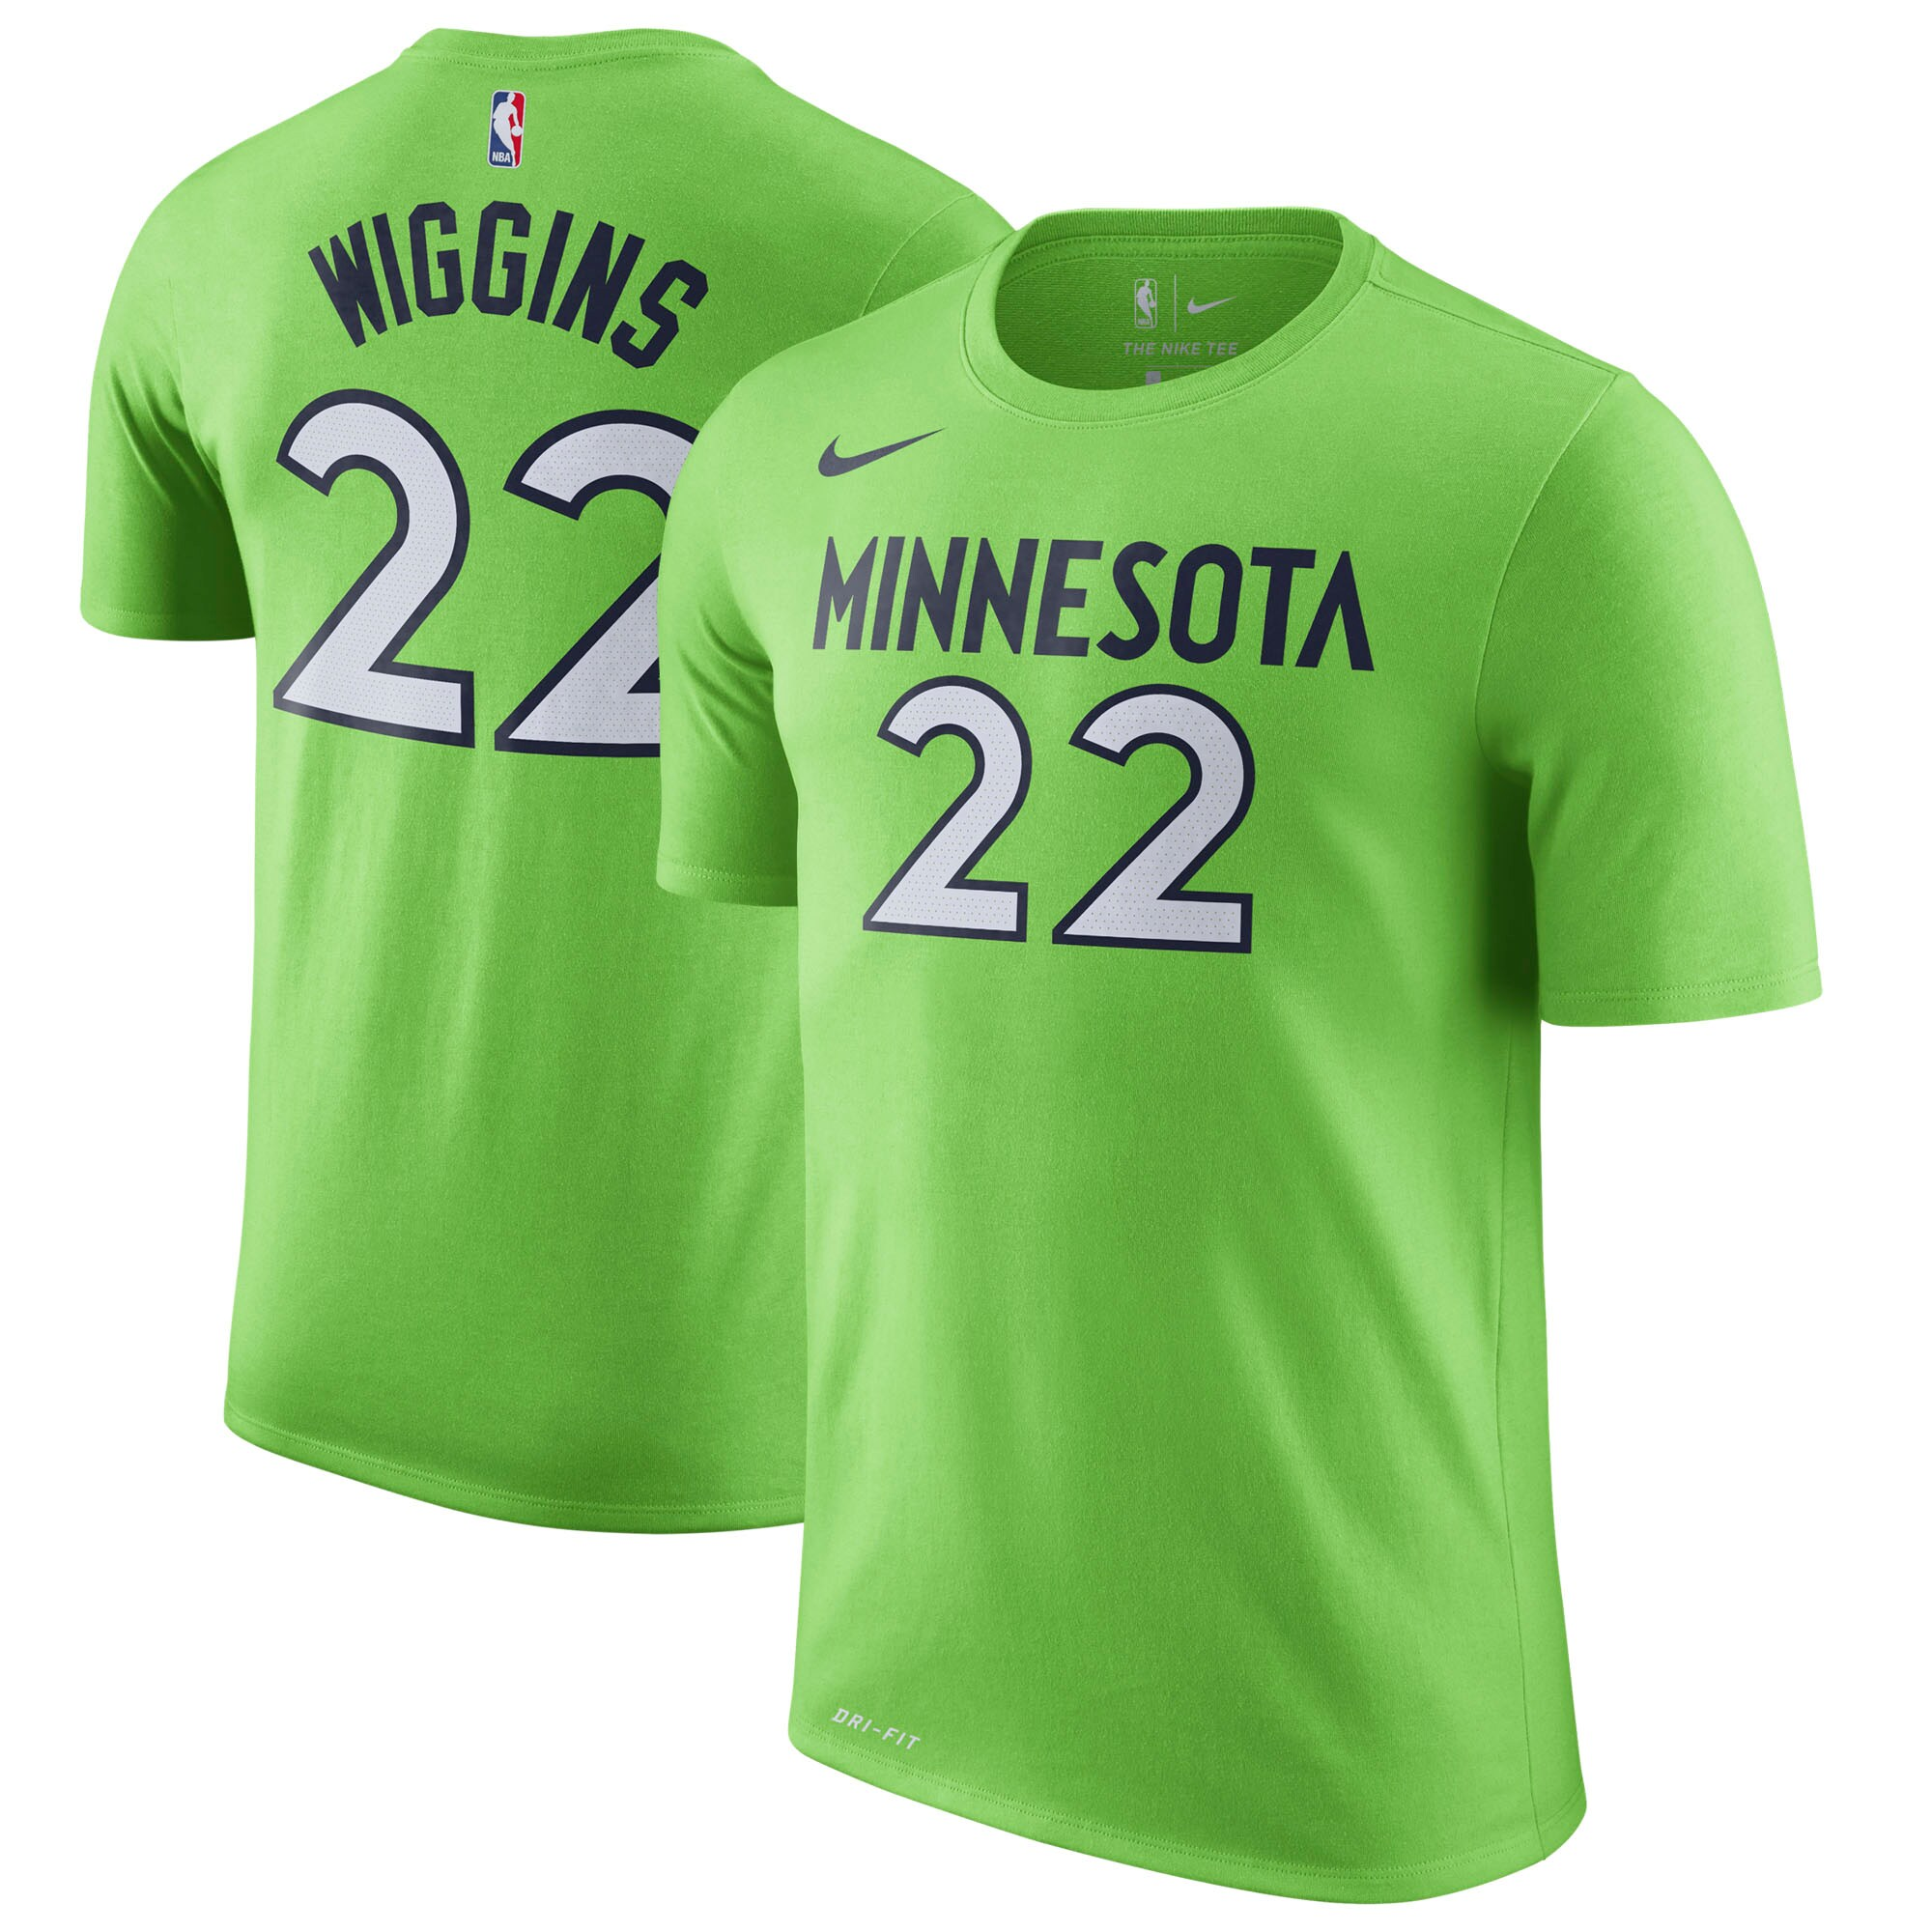 Andrew Wiggins Minnesota Timberwolves Nike Name & Number Statement Performance T-Shirt - Green